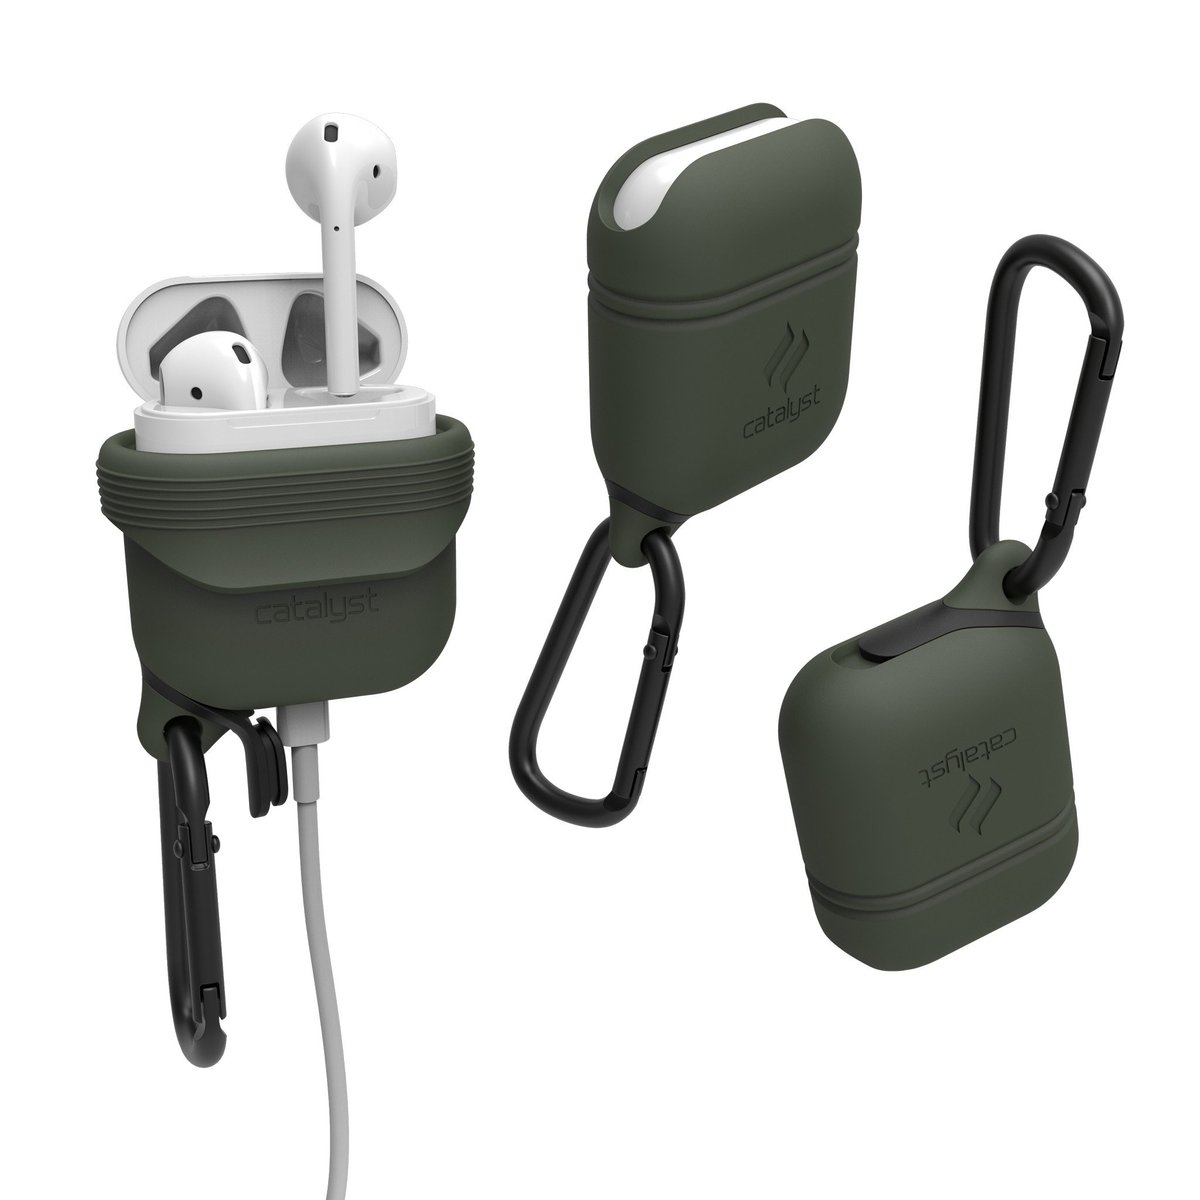 Case for Apple Airpods - Army Green